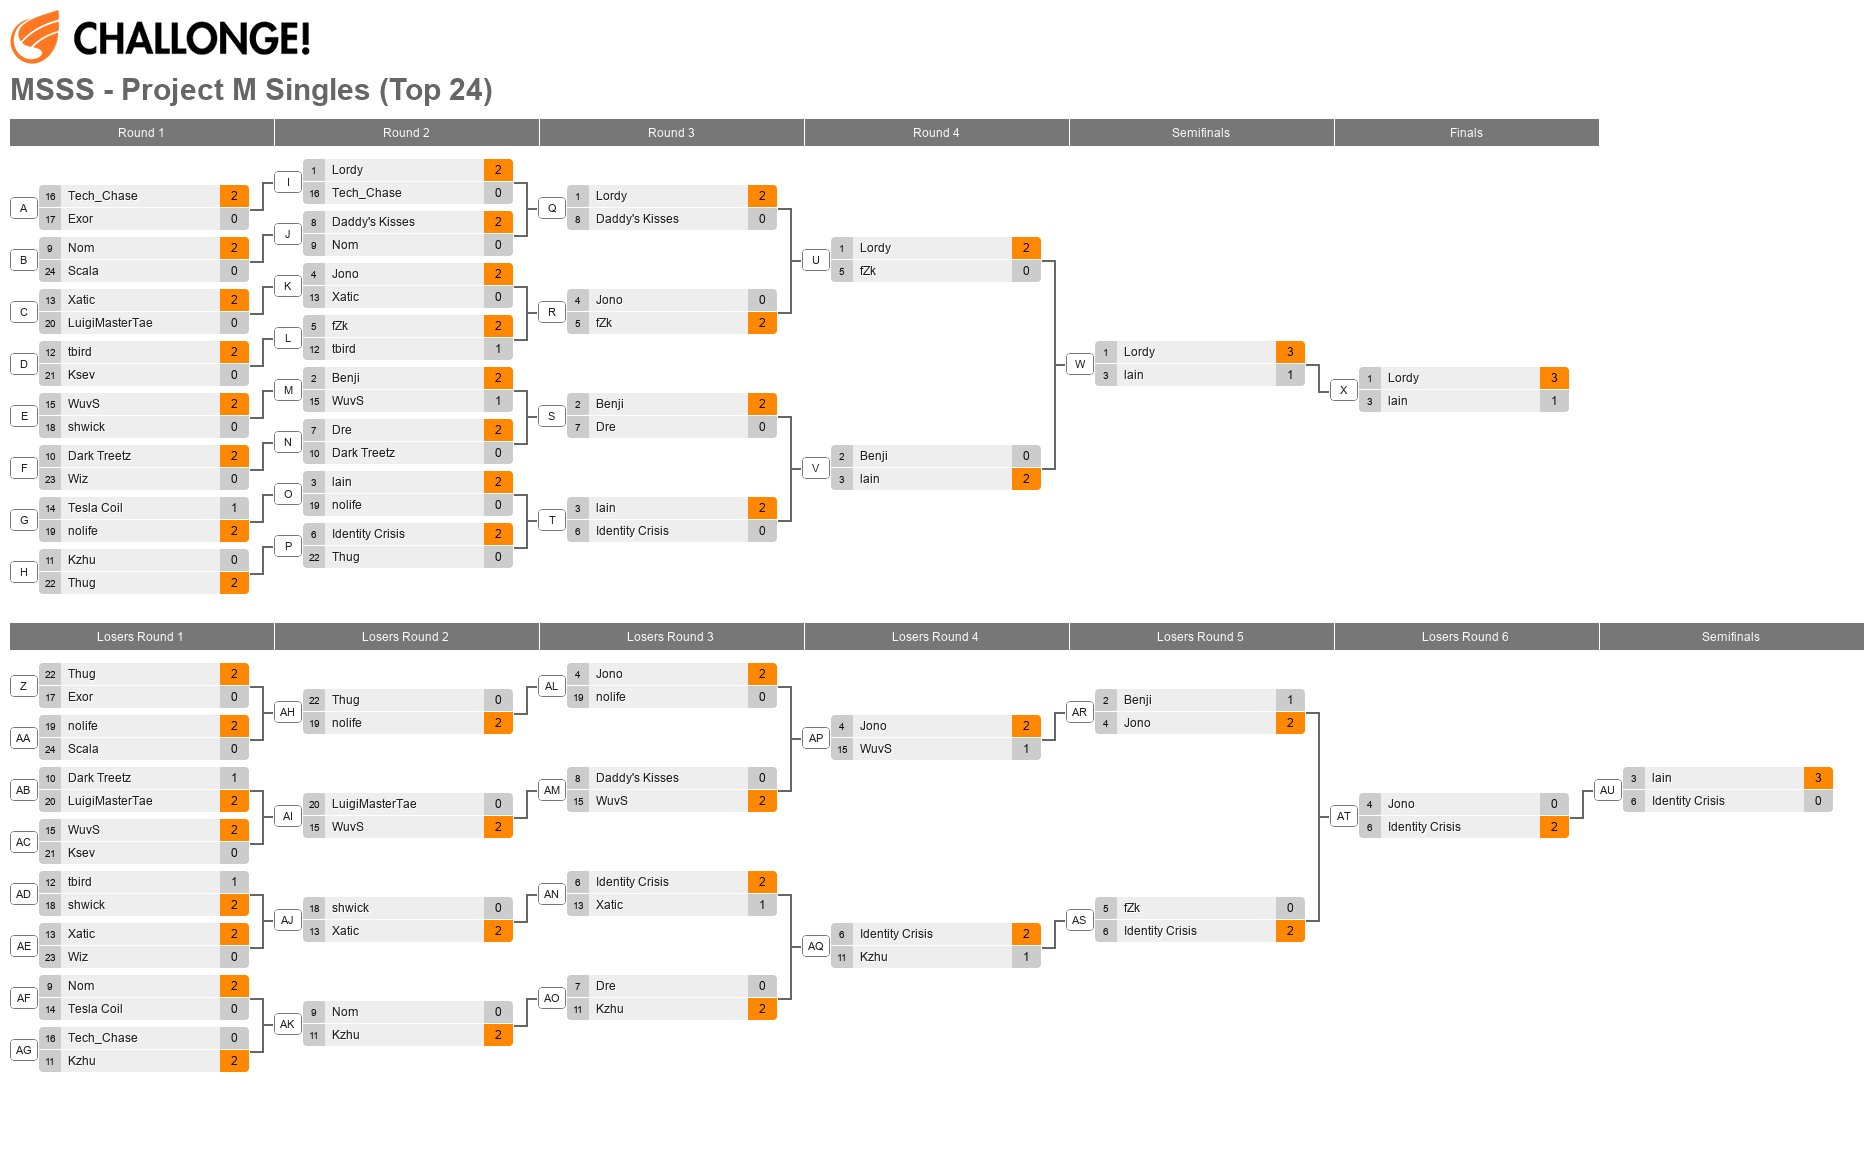 MSSS - Project M Singles (Top 24)